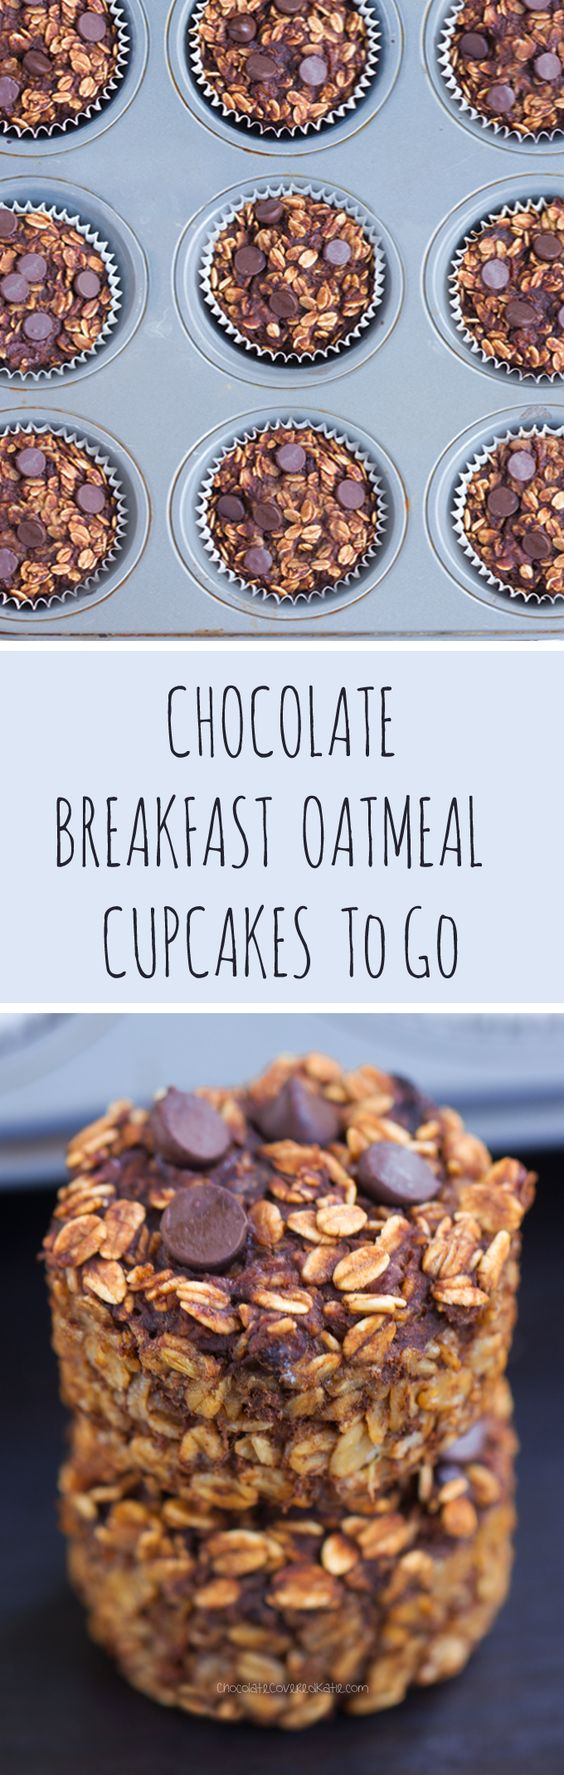 You cook just ONCE and get a delicious breakfast for the entire month - Easy & nutritious recipe loved by kids and adults: http://chocolatecoveredkatie.com/ @choccoveredkt